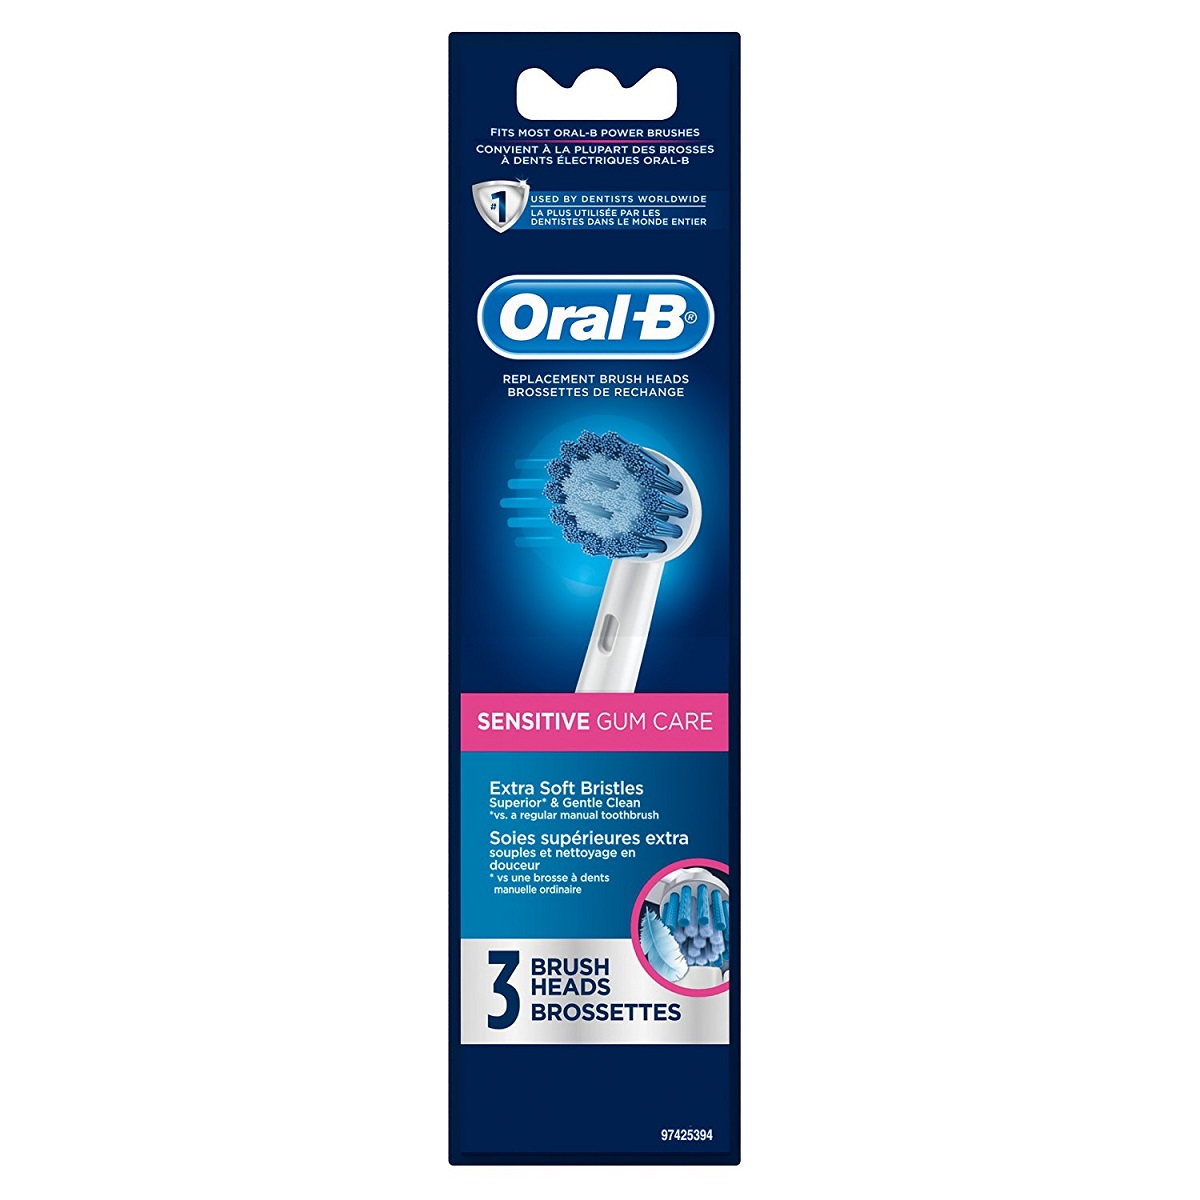 80274131 - Oral-B Sensitive Gum Care Replacement Brush ...